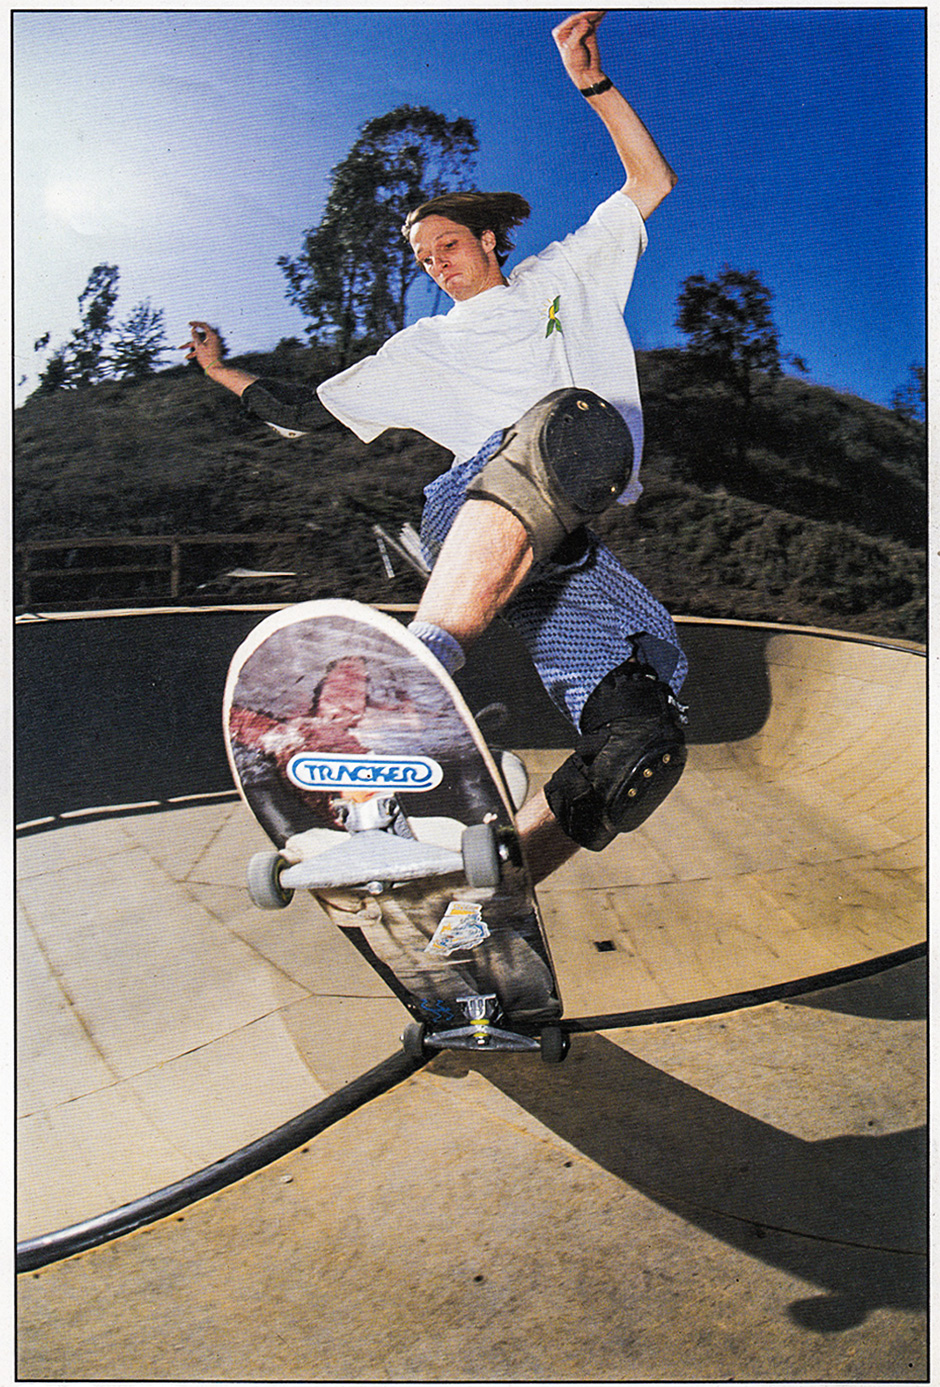 SMALL TIRES AND A REAL JIM THIEBAUD BOARD. PHOTO: BRAD MCDONALD FOR SKATEBOARD! MAGAZINE in 1992